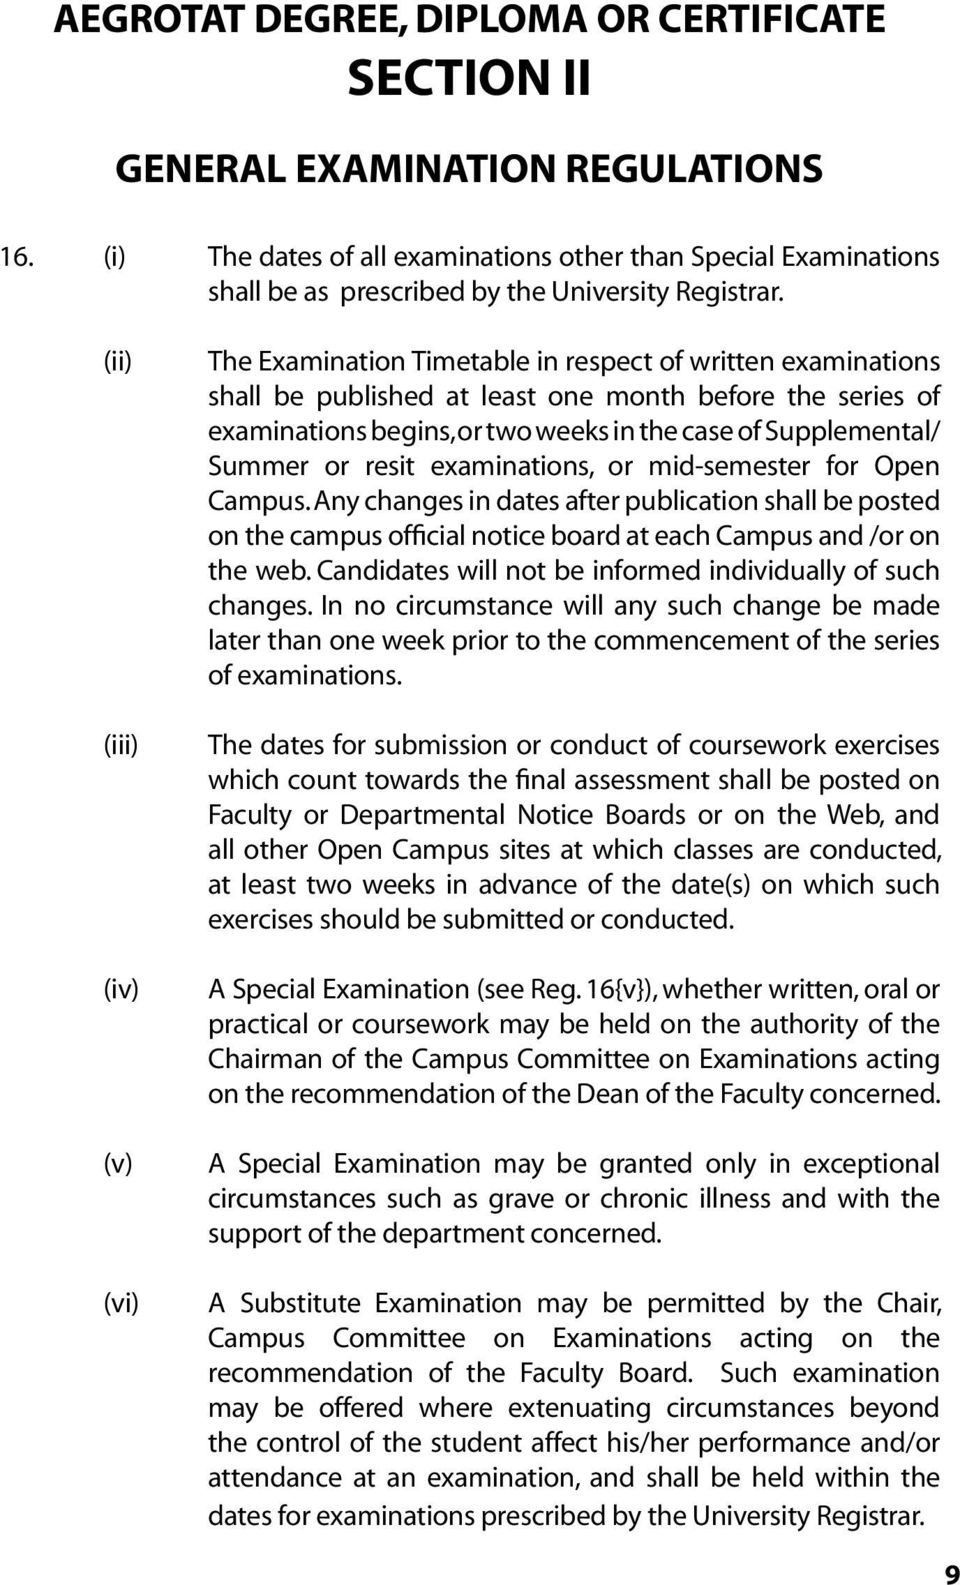 (iv) (v) (vi) The Examination Timetable in respect of written examinations shall be published at least one month before the series of examinations begins, or two weeks in the case of Supplemental/